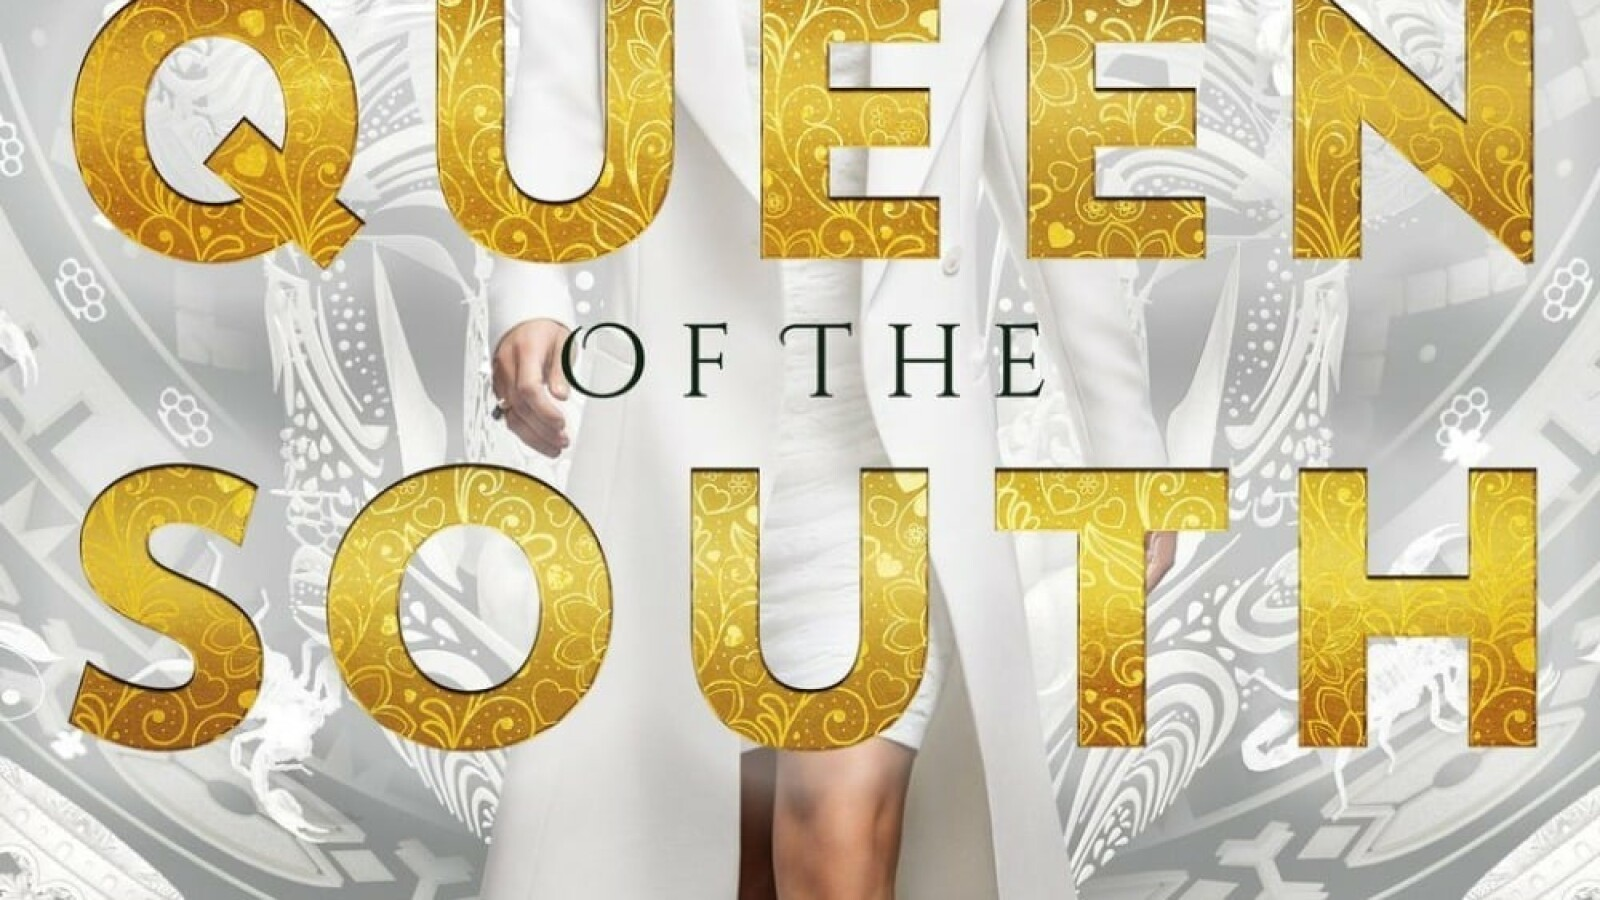 Queen Of The South Dmax Mediathek